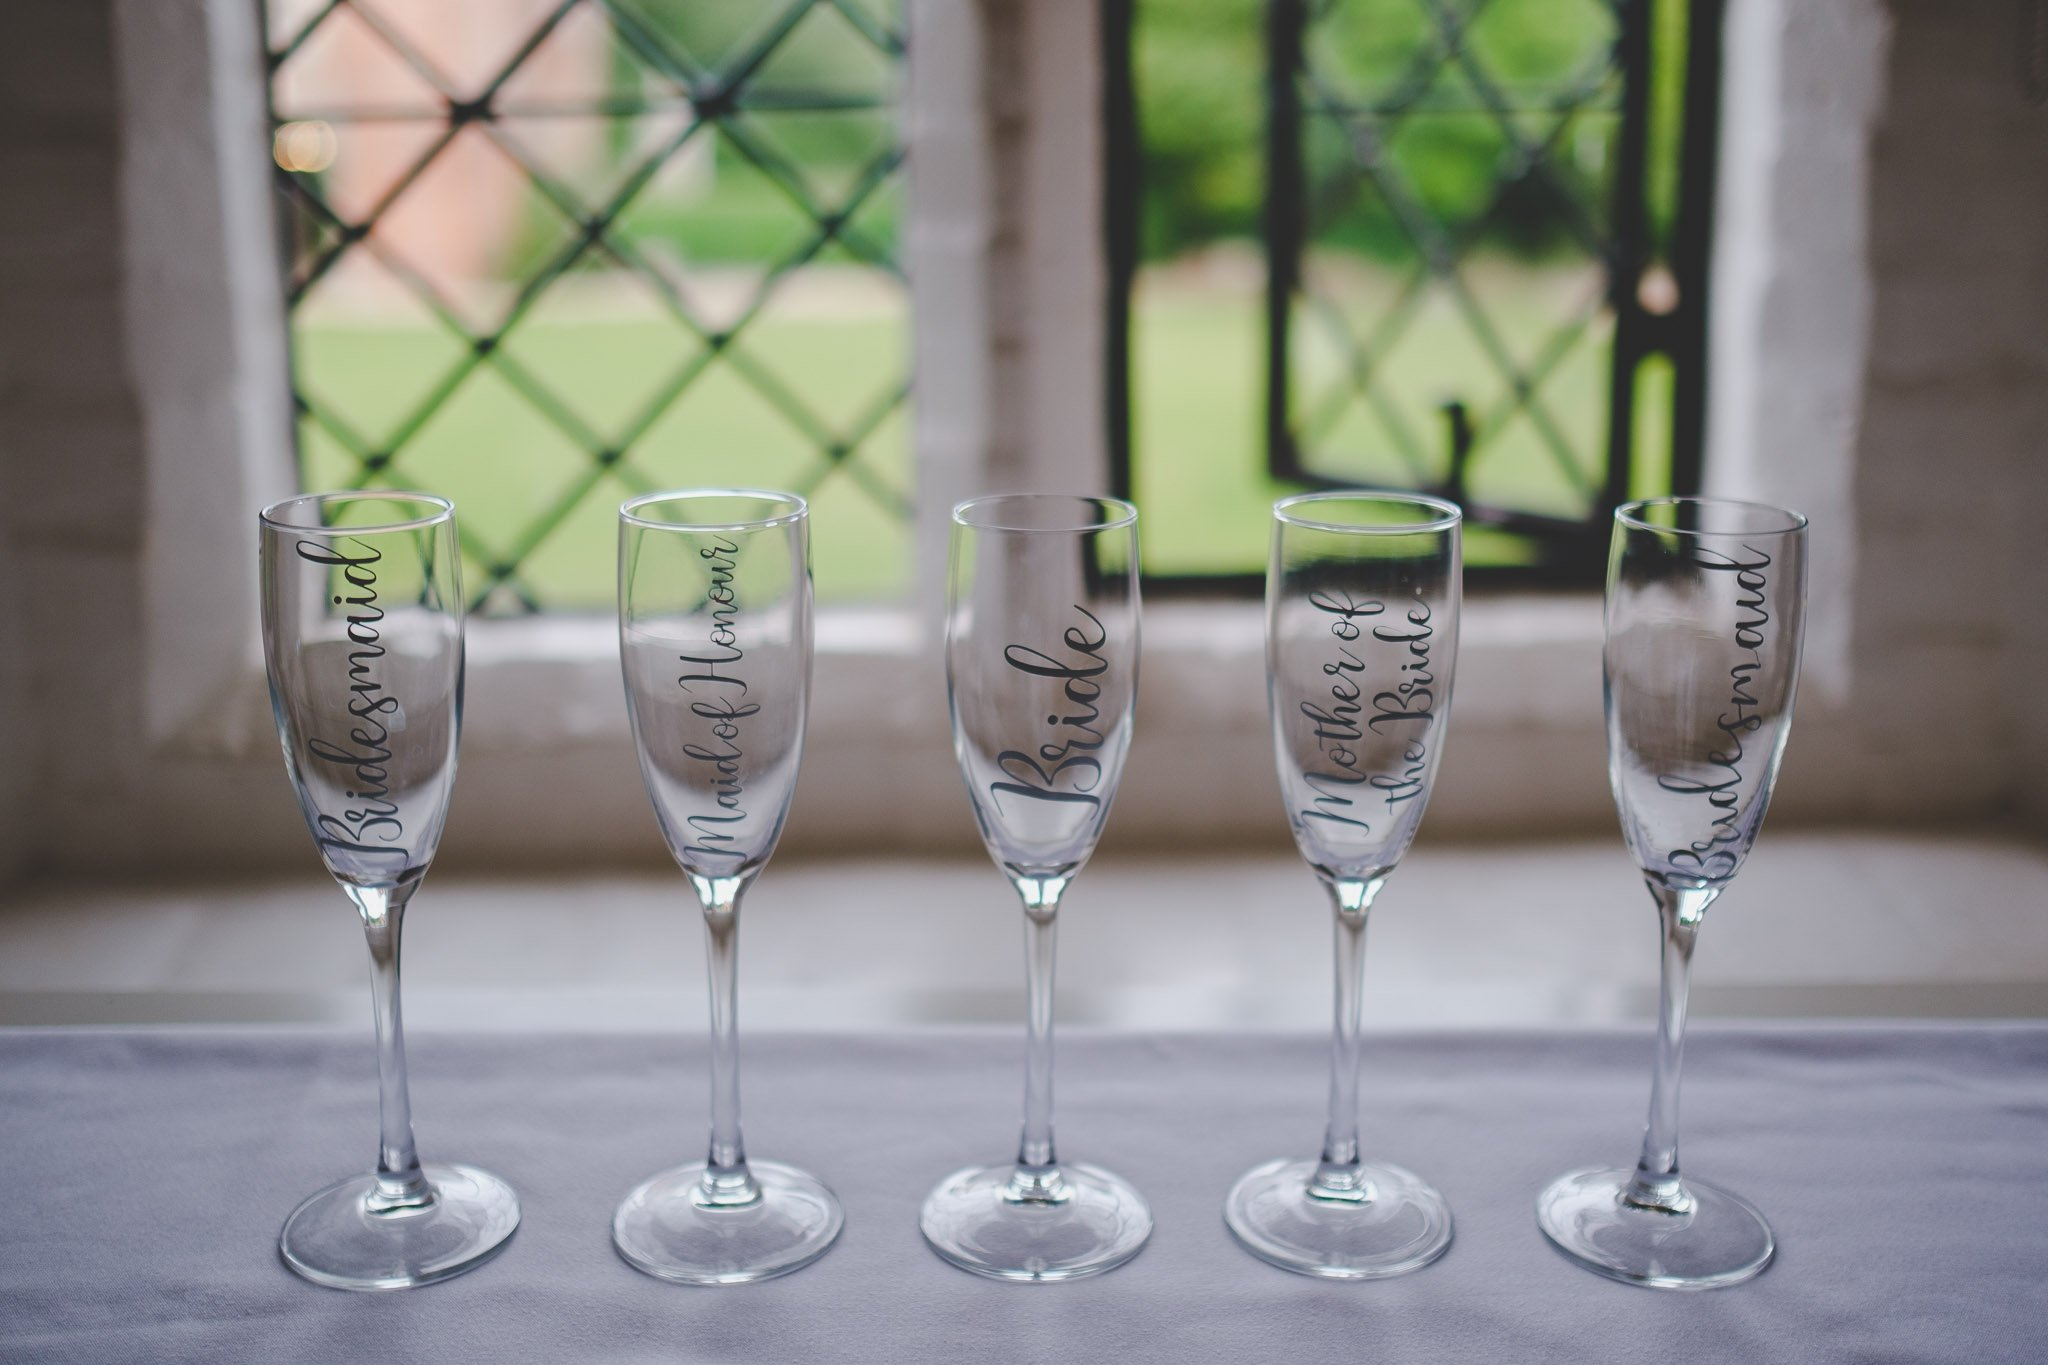 Personalised wedding champagne glasses by a window.